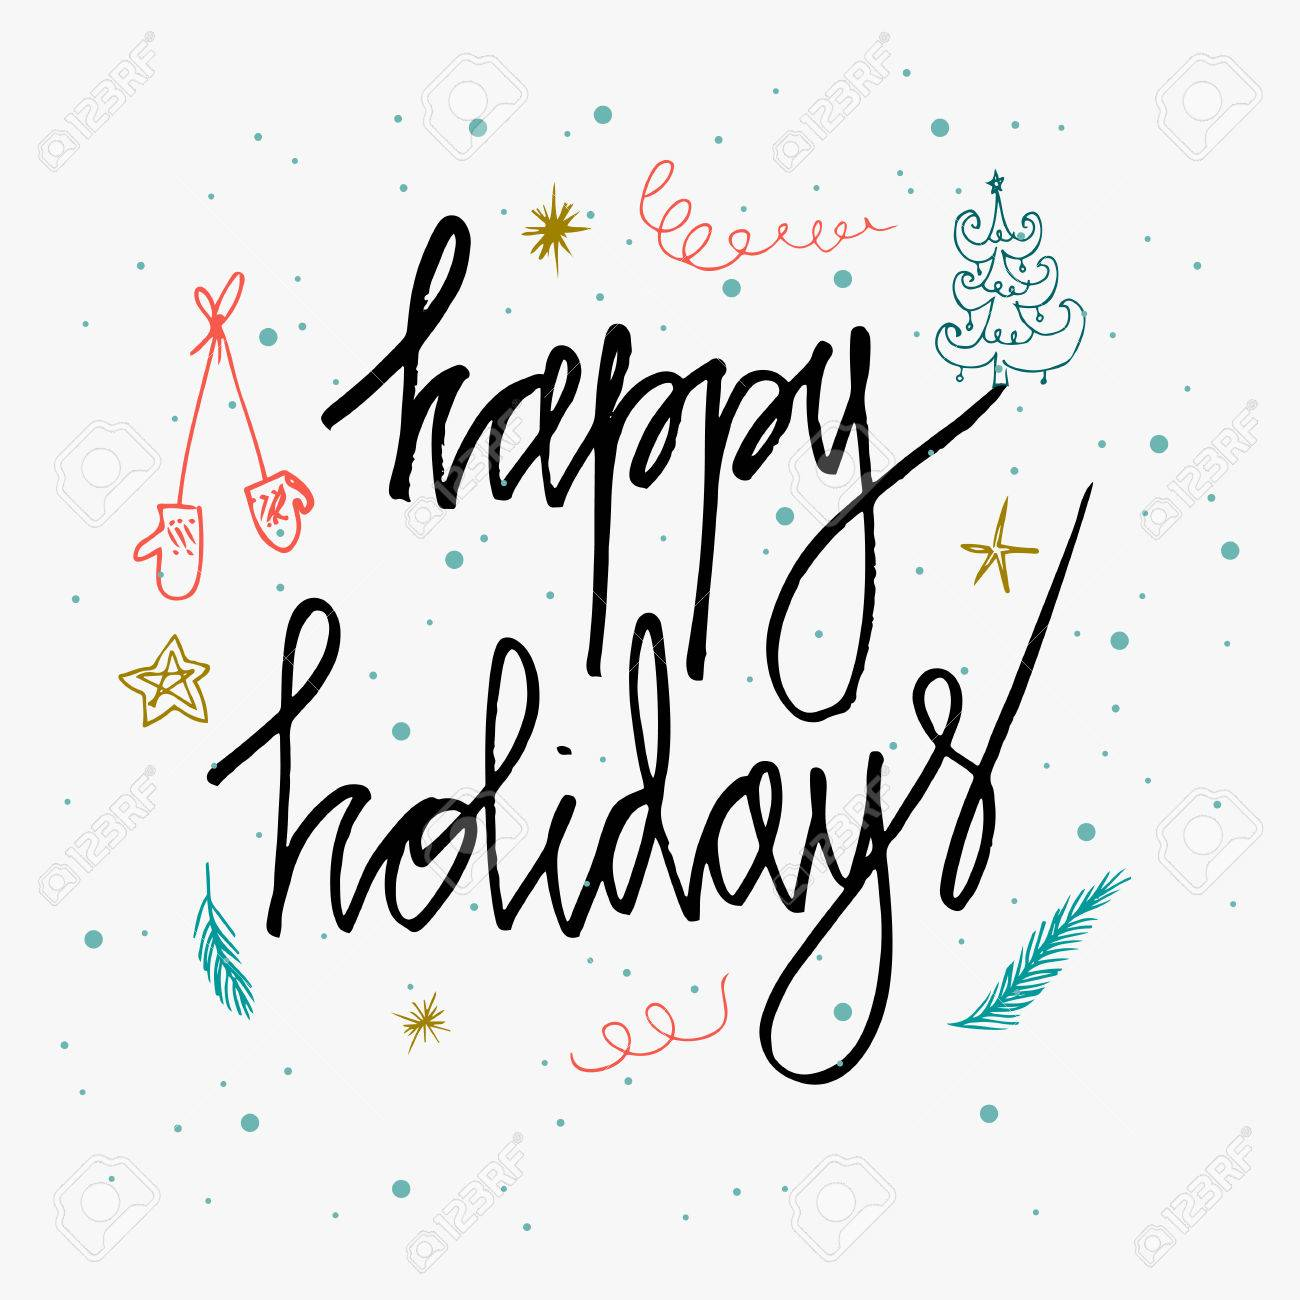 Happy holidays greetings lettering card isolated on white background happy holidays greetings lettering card isolated on white background holidays lettering for invitation and greeting m4hsunfo